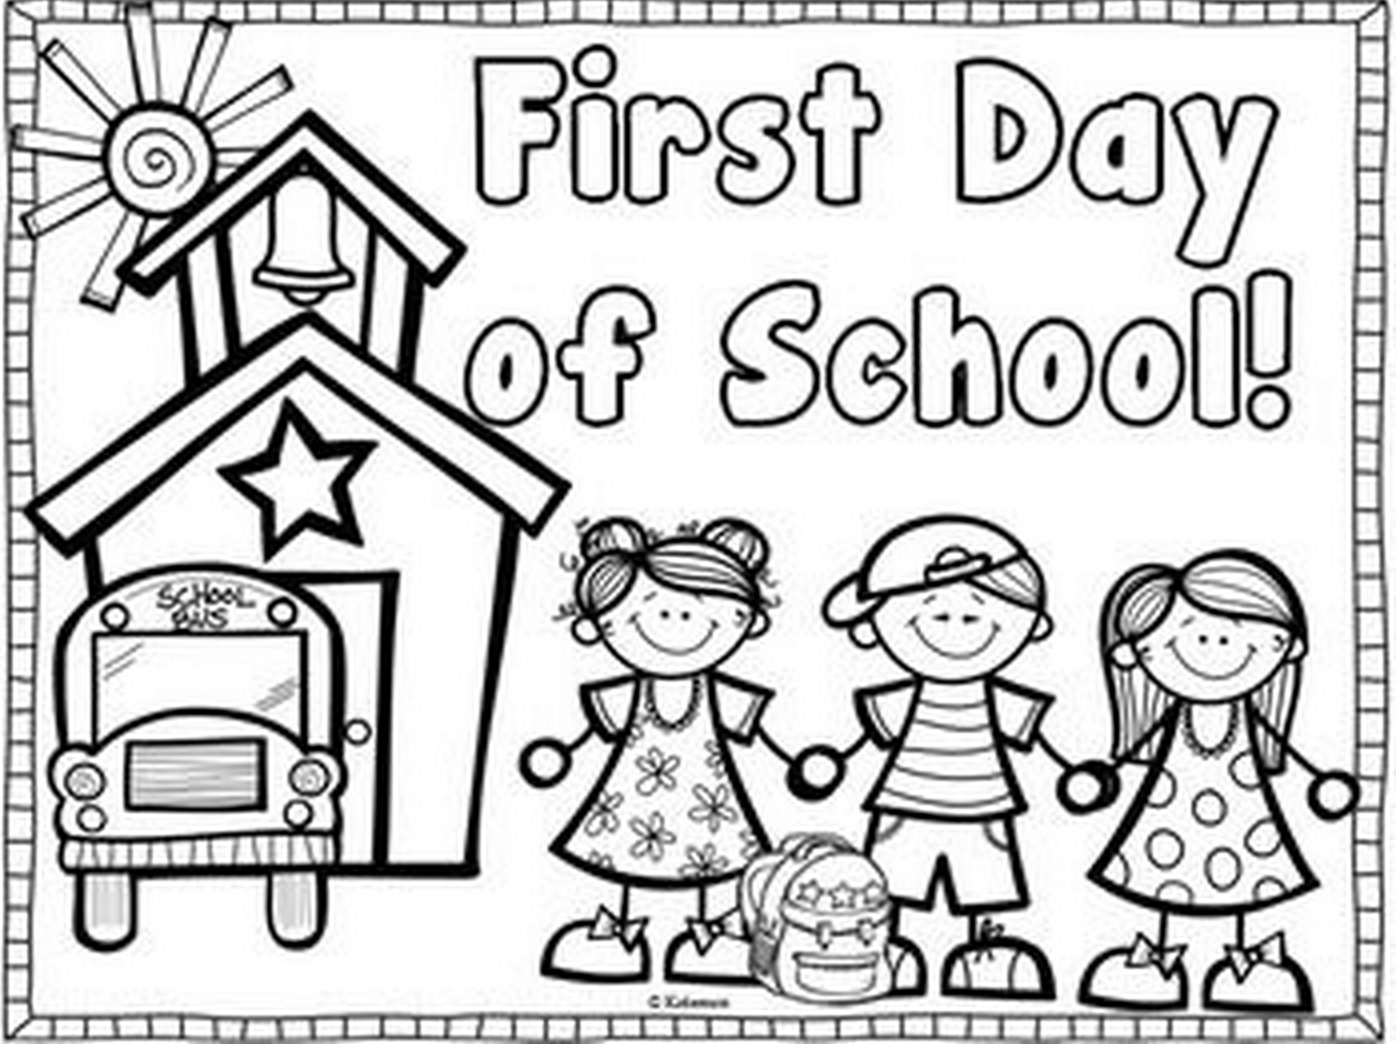 first day school coloring sheets first day freebies a teeny tiny teacher kindergarten first coloring sheets day school